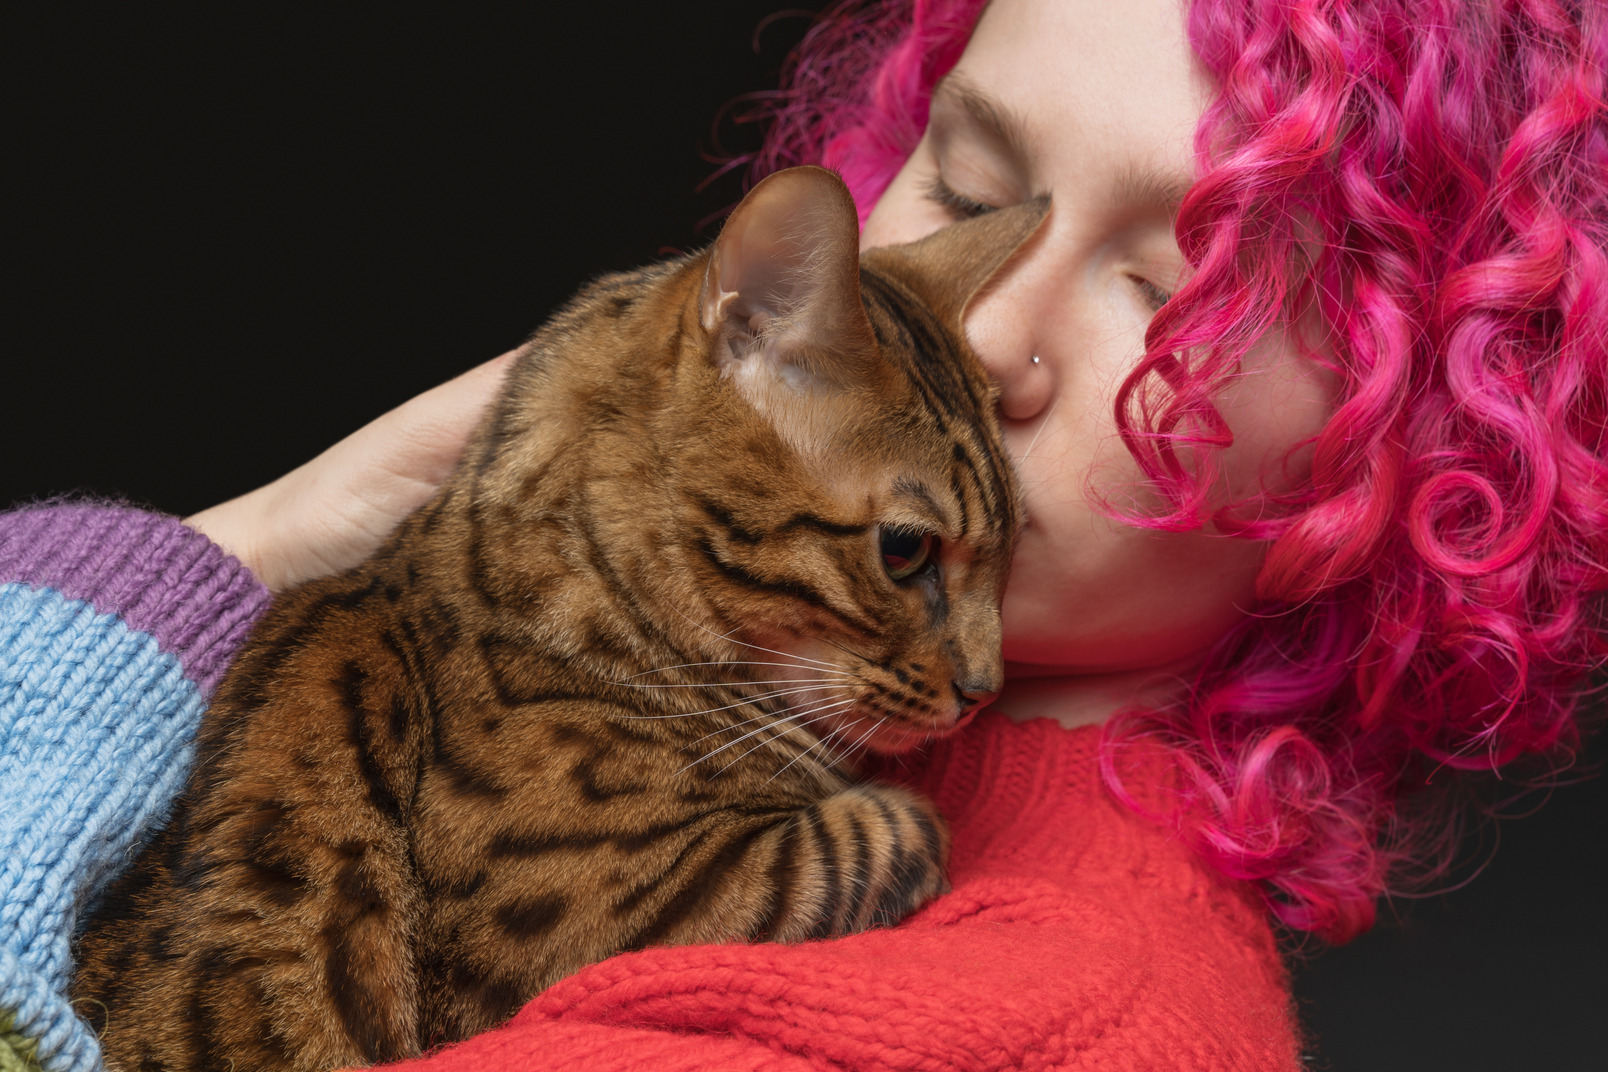 A bengal cat being kissed by its owner